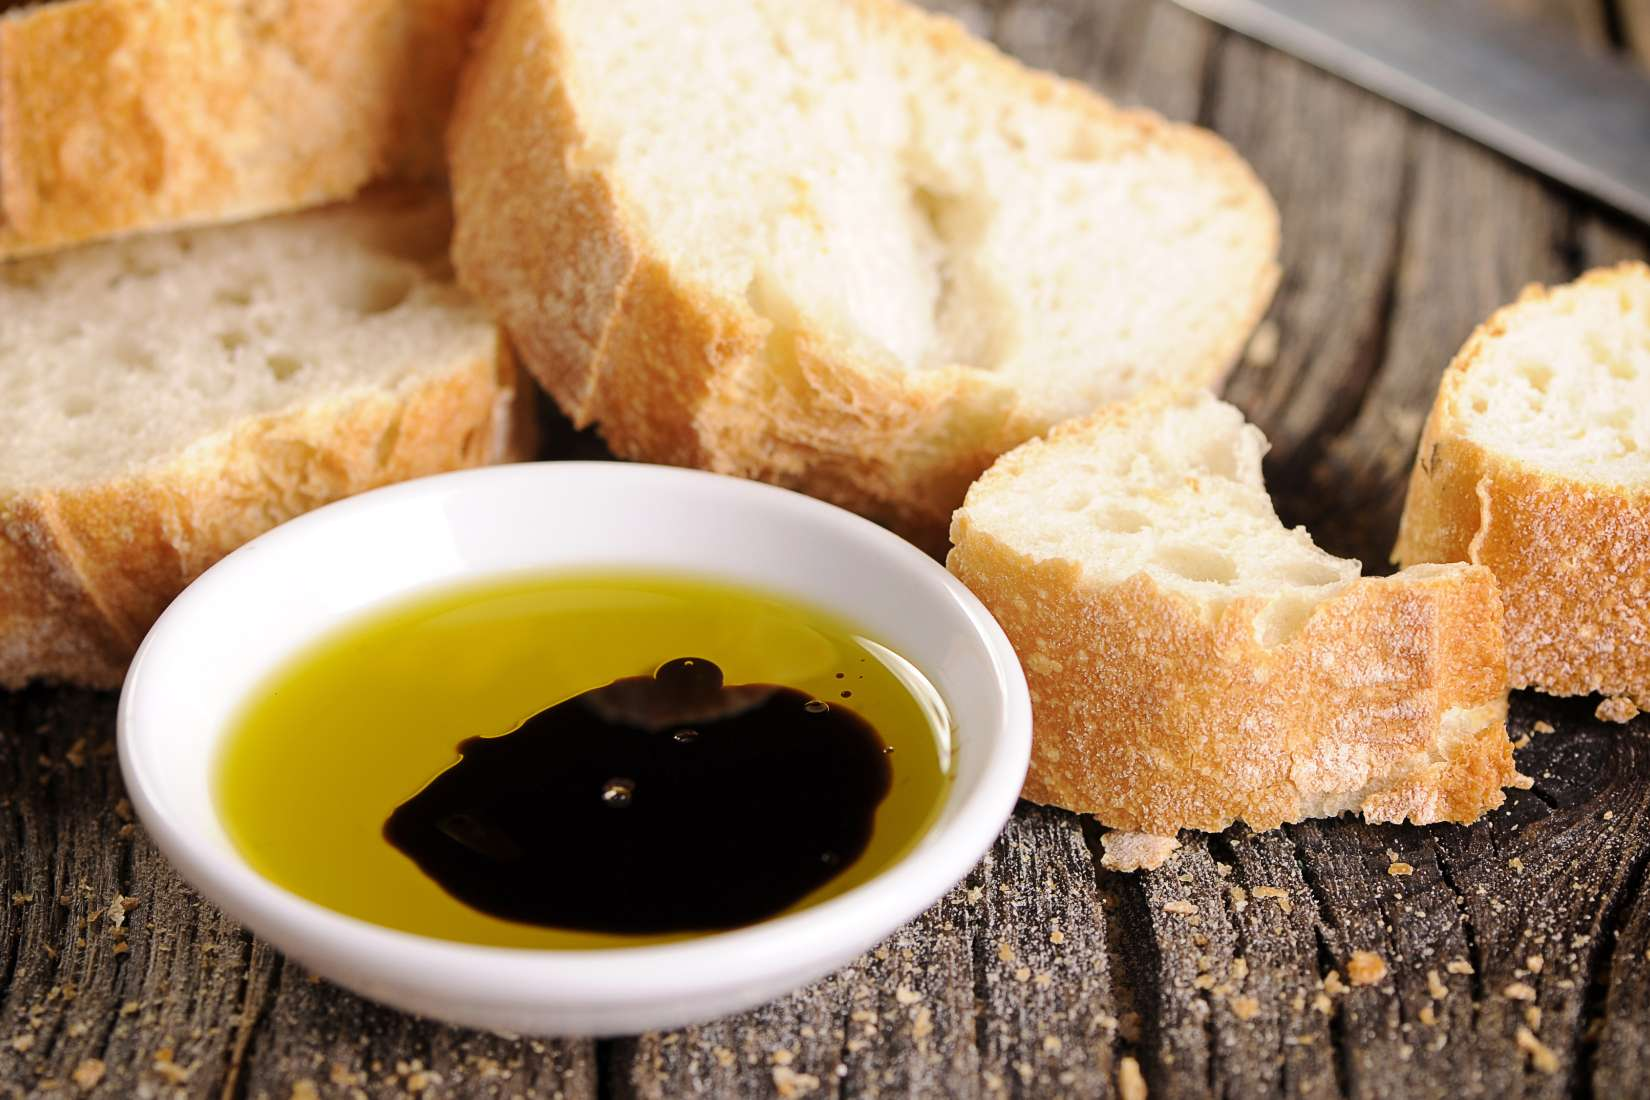 Balsamic vinegar and olive oil and bread